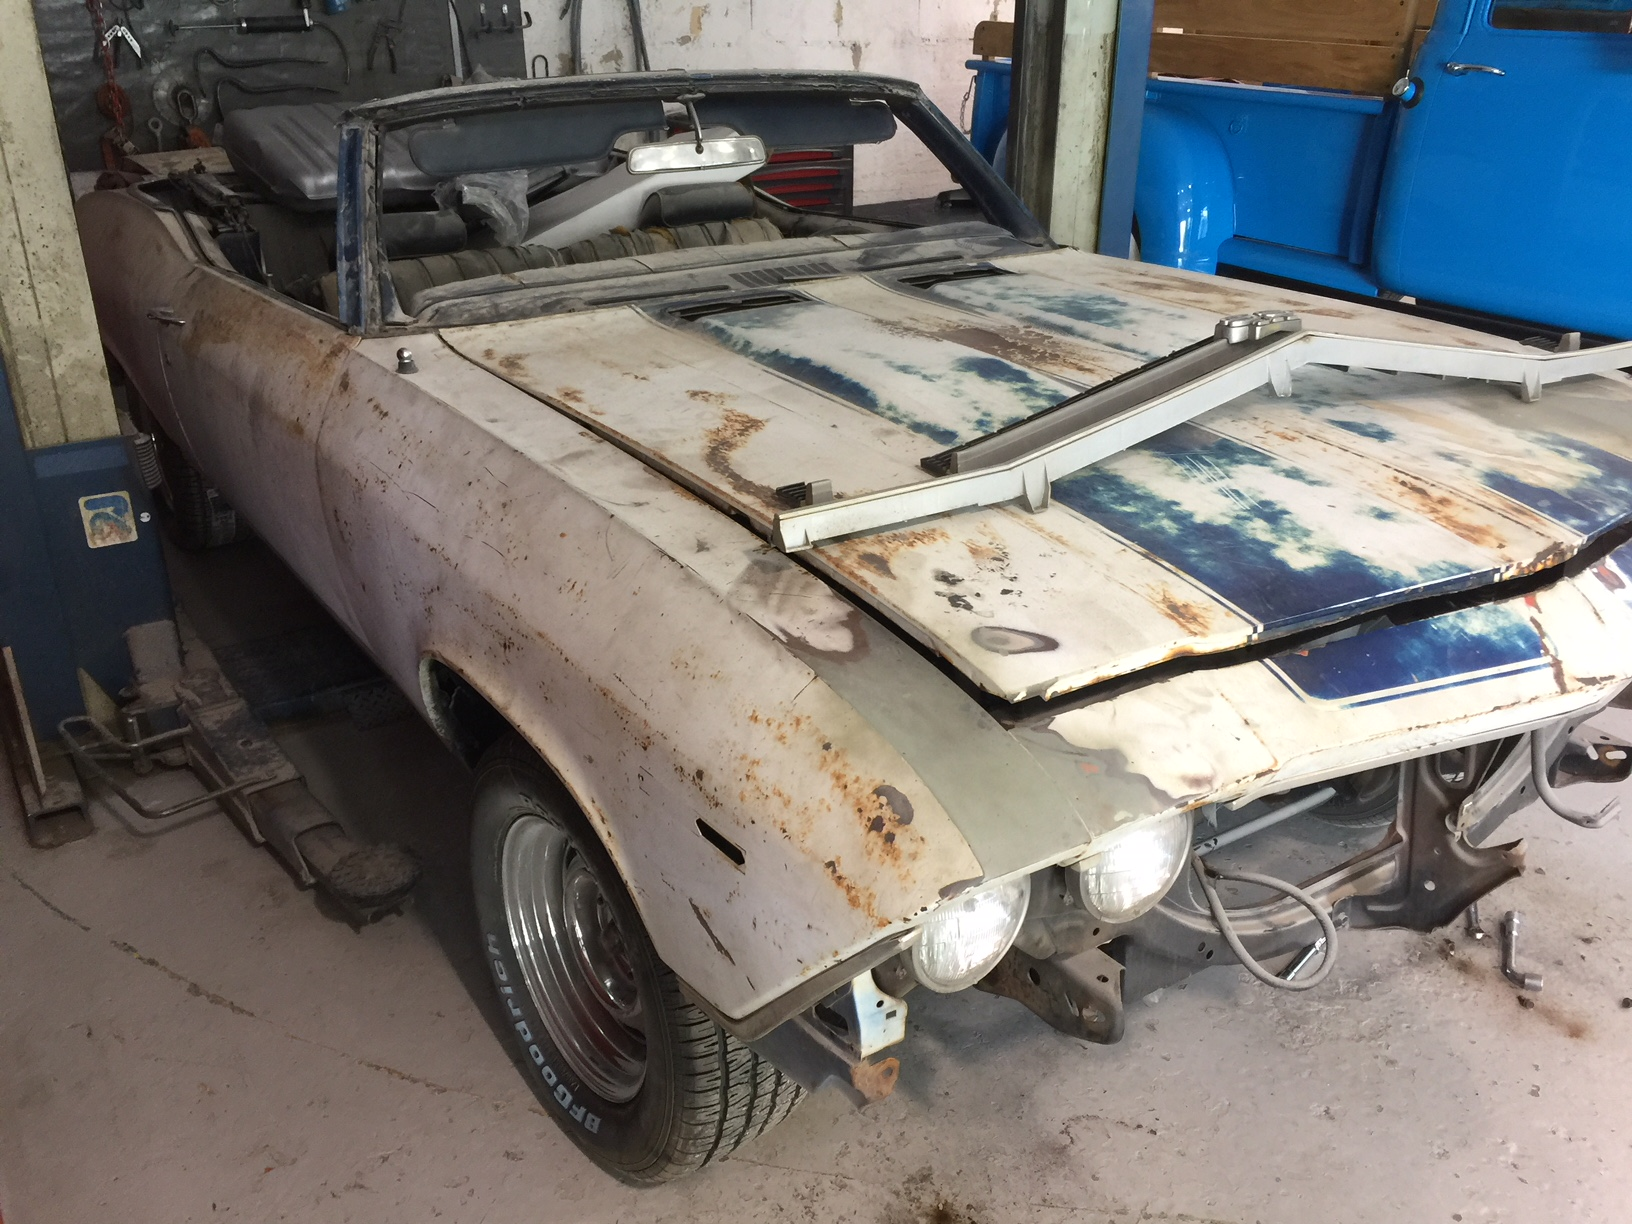 1969 Chevelle before restoration